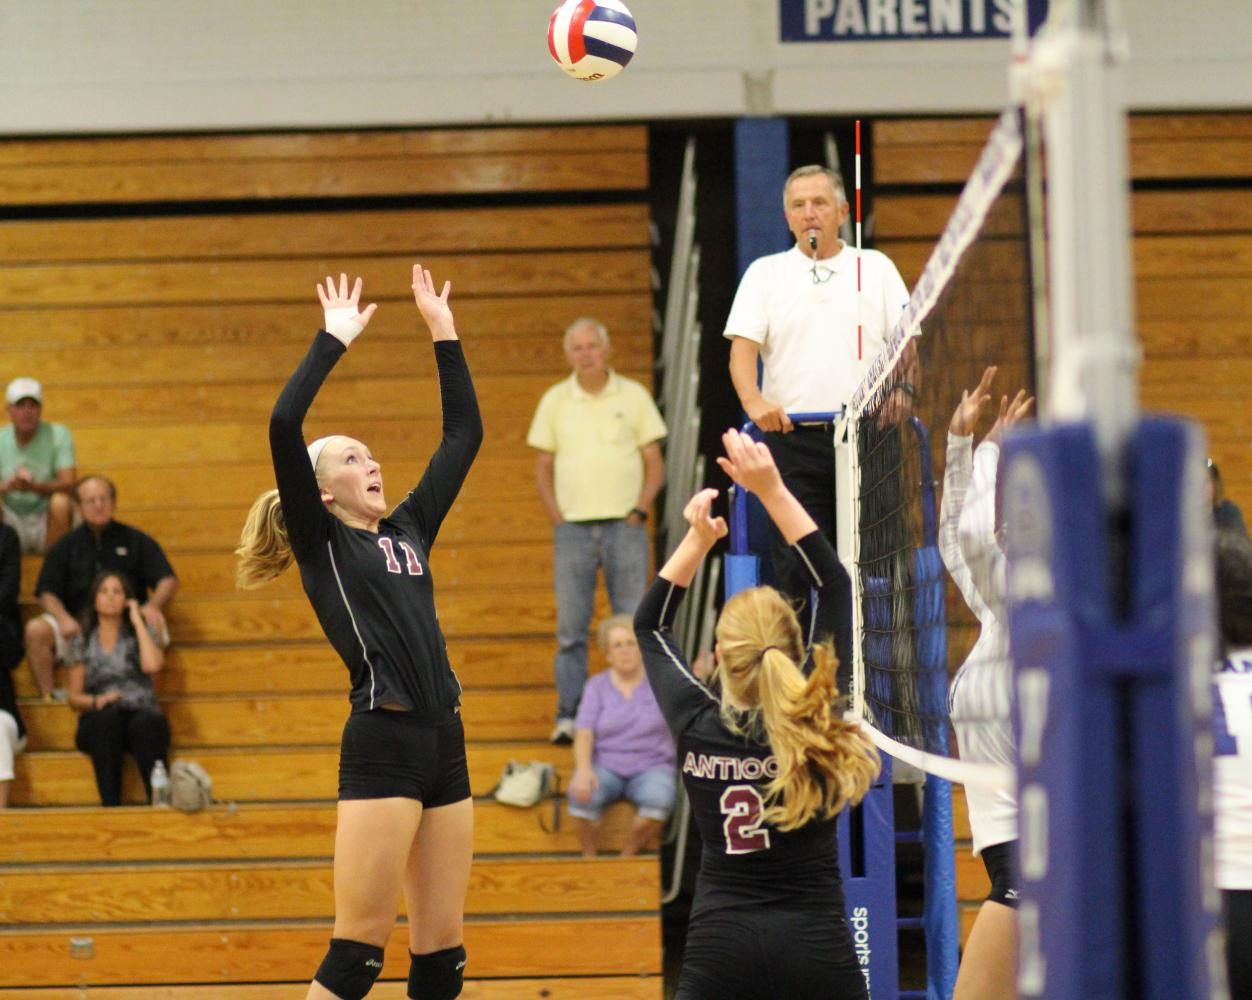 Seniors Katherine Barr and Kennedy Moll move the ball through the front row to get a kill on offense.